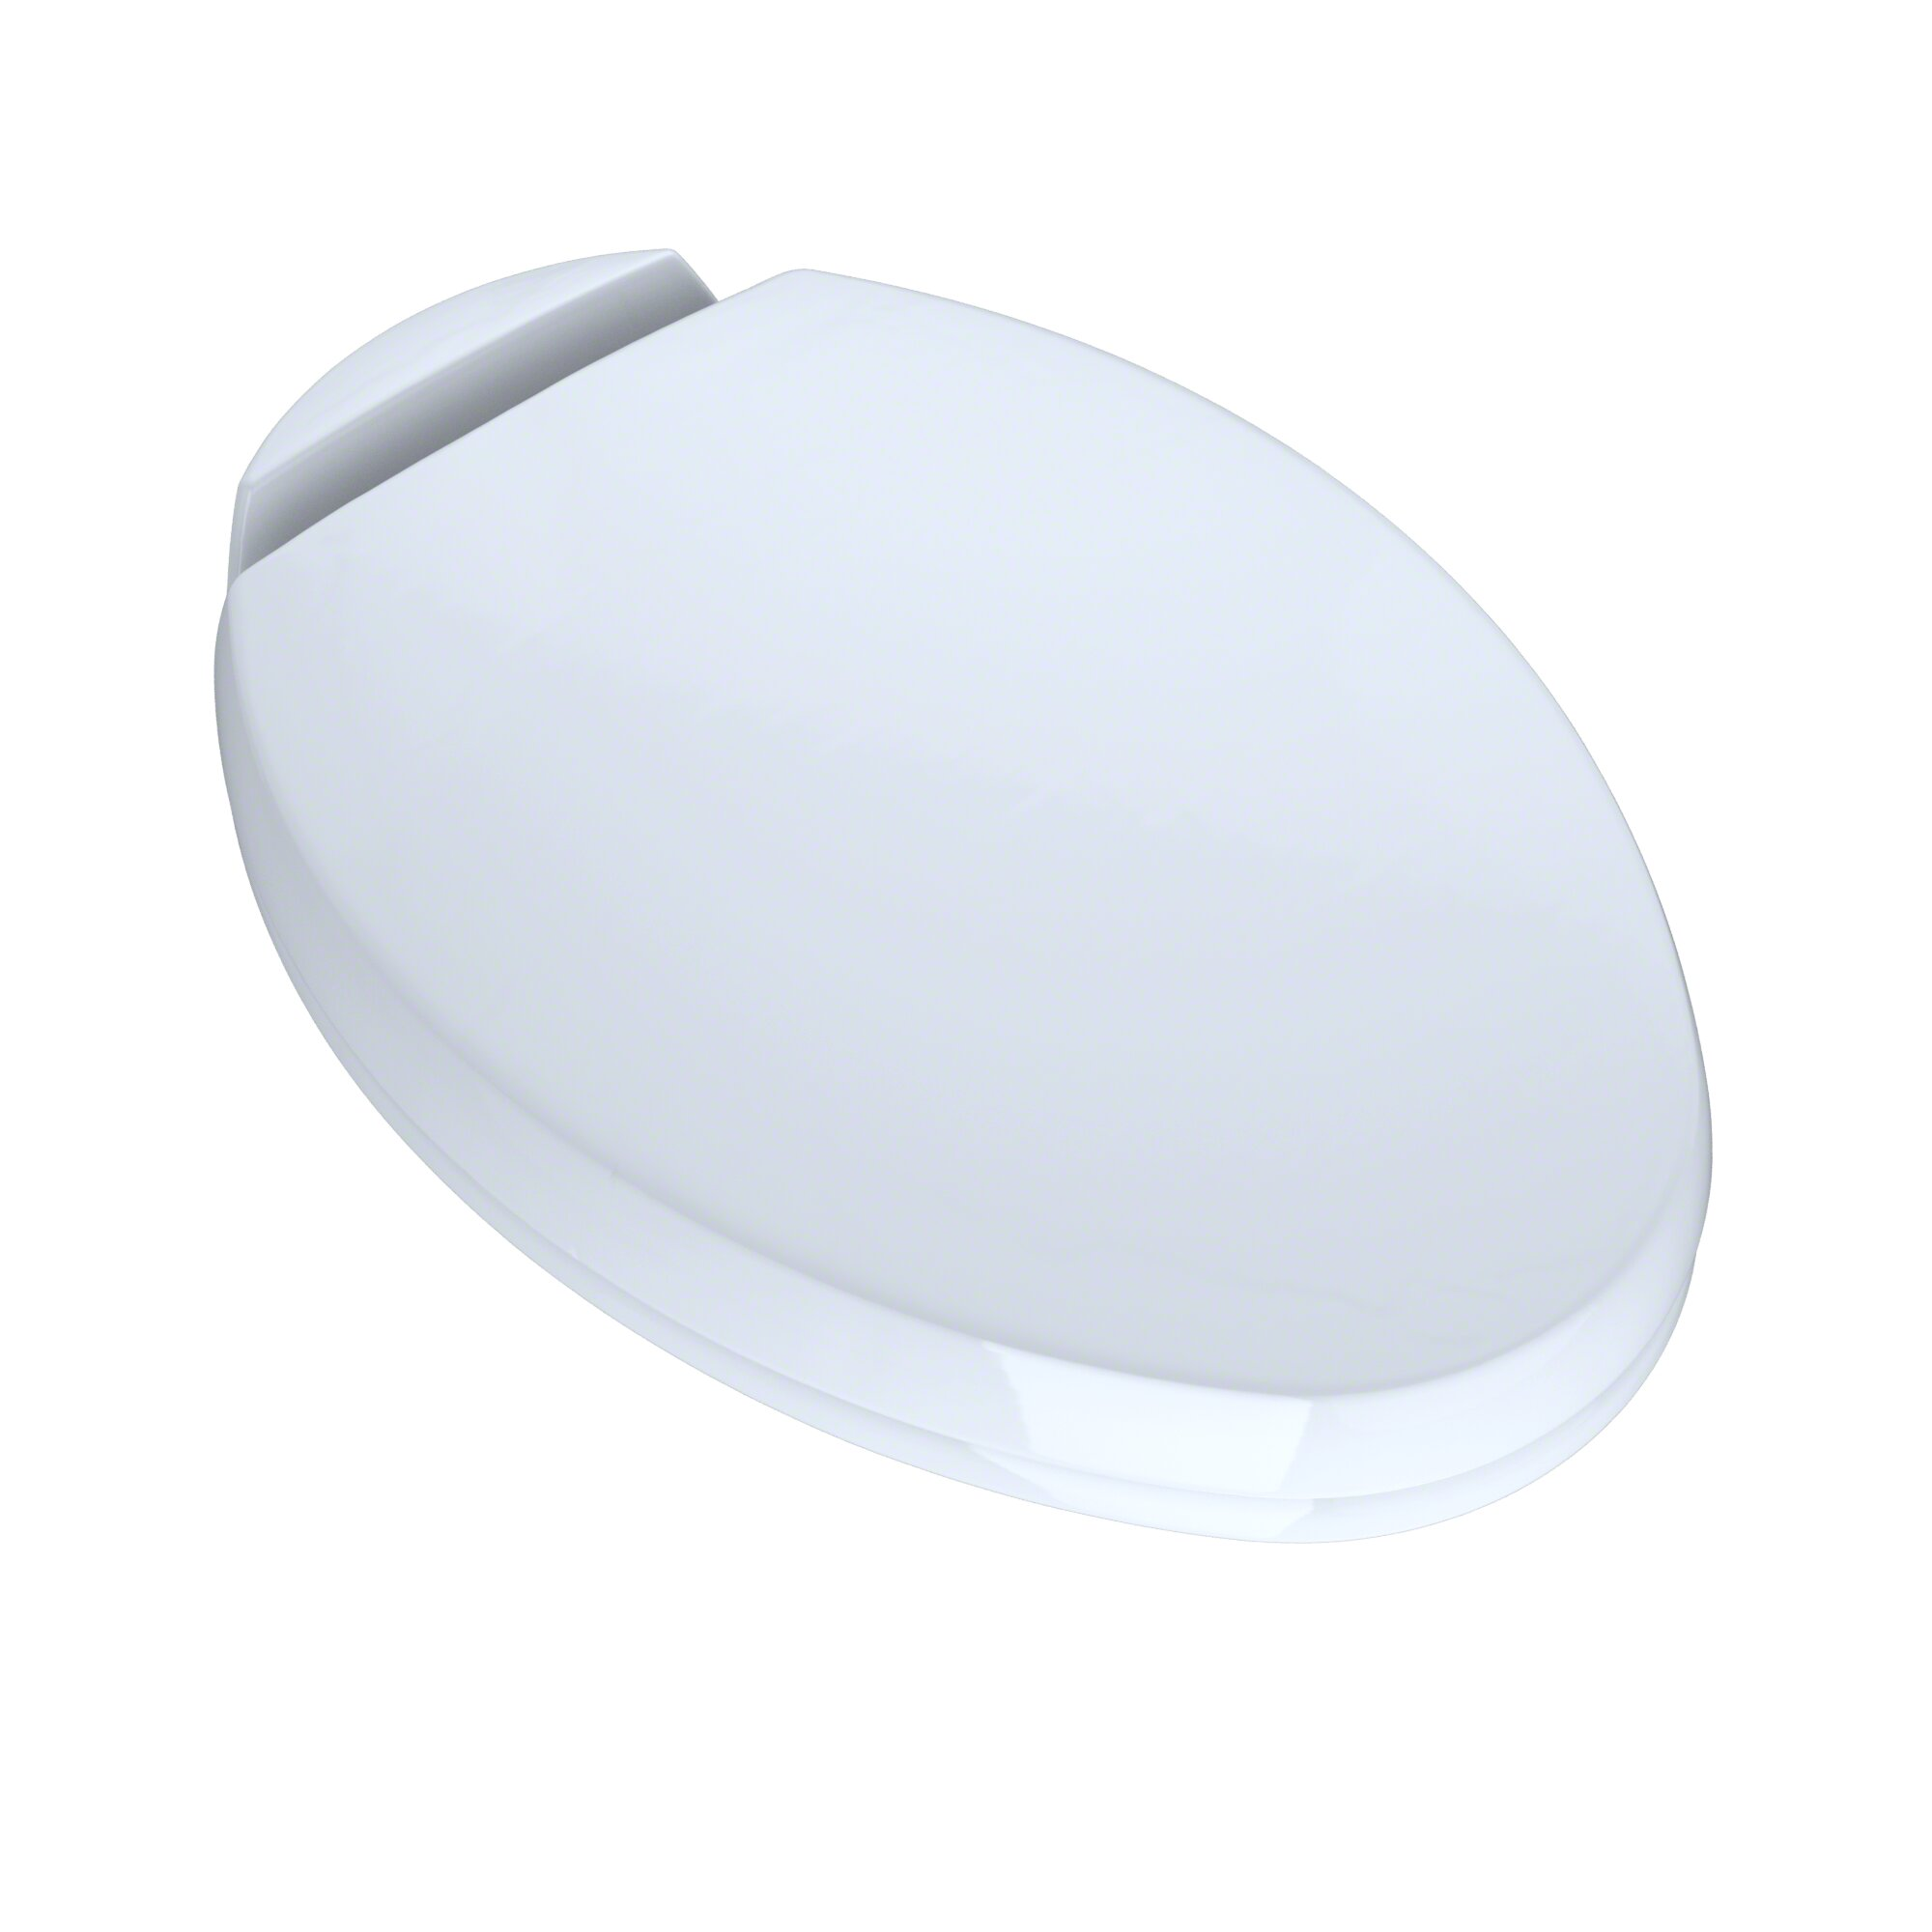 Toto SoftClose Elongated Beveled Lid Toilet Seat  Reviews Wayfair - Oak toilet seat soft close